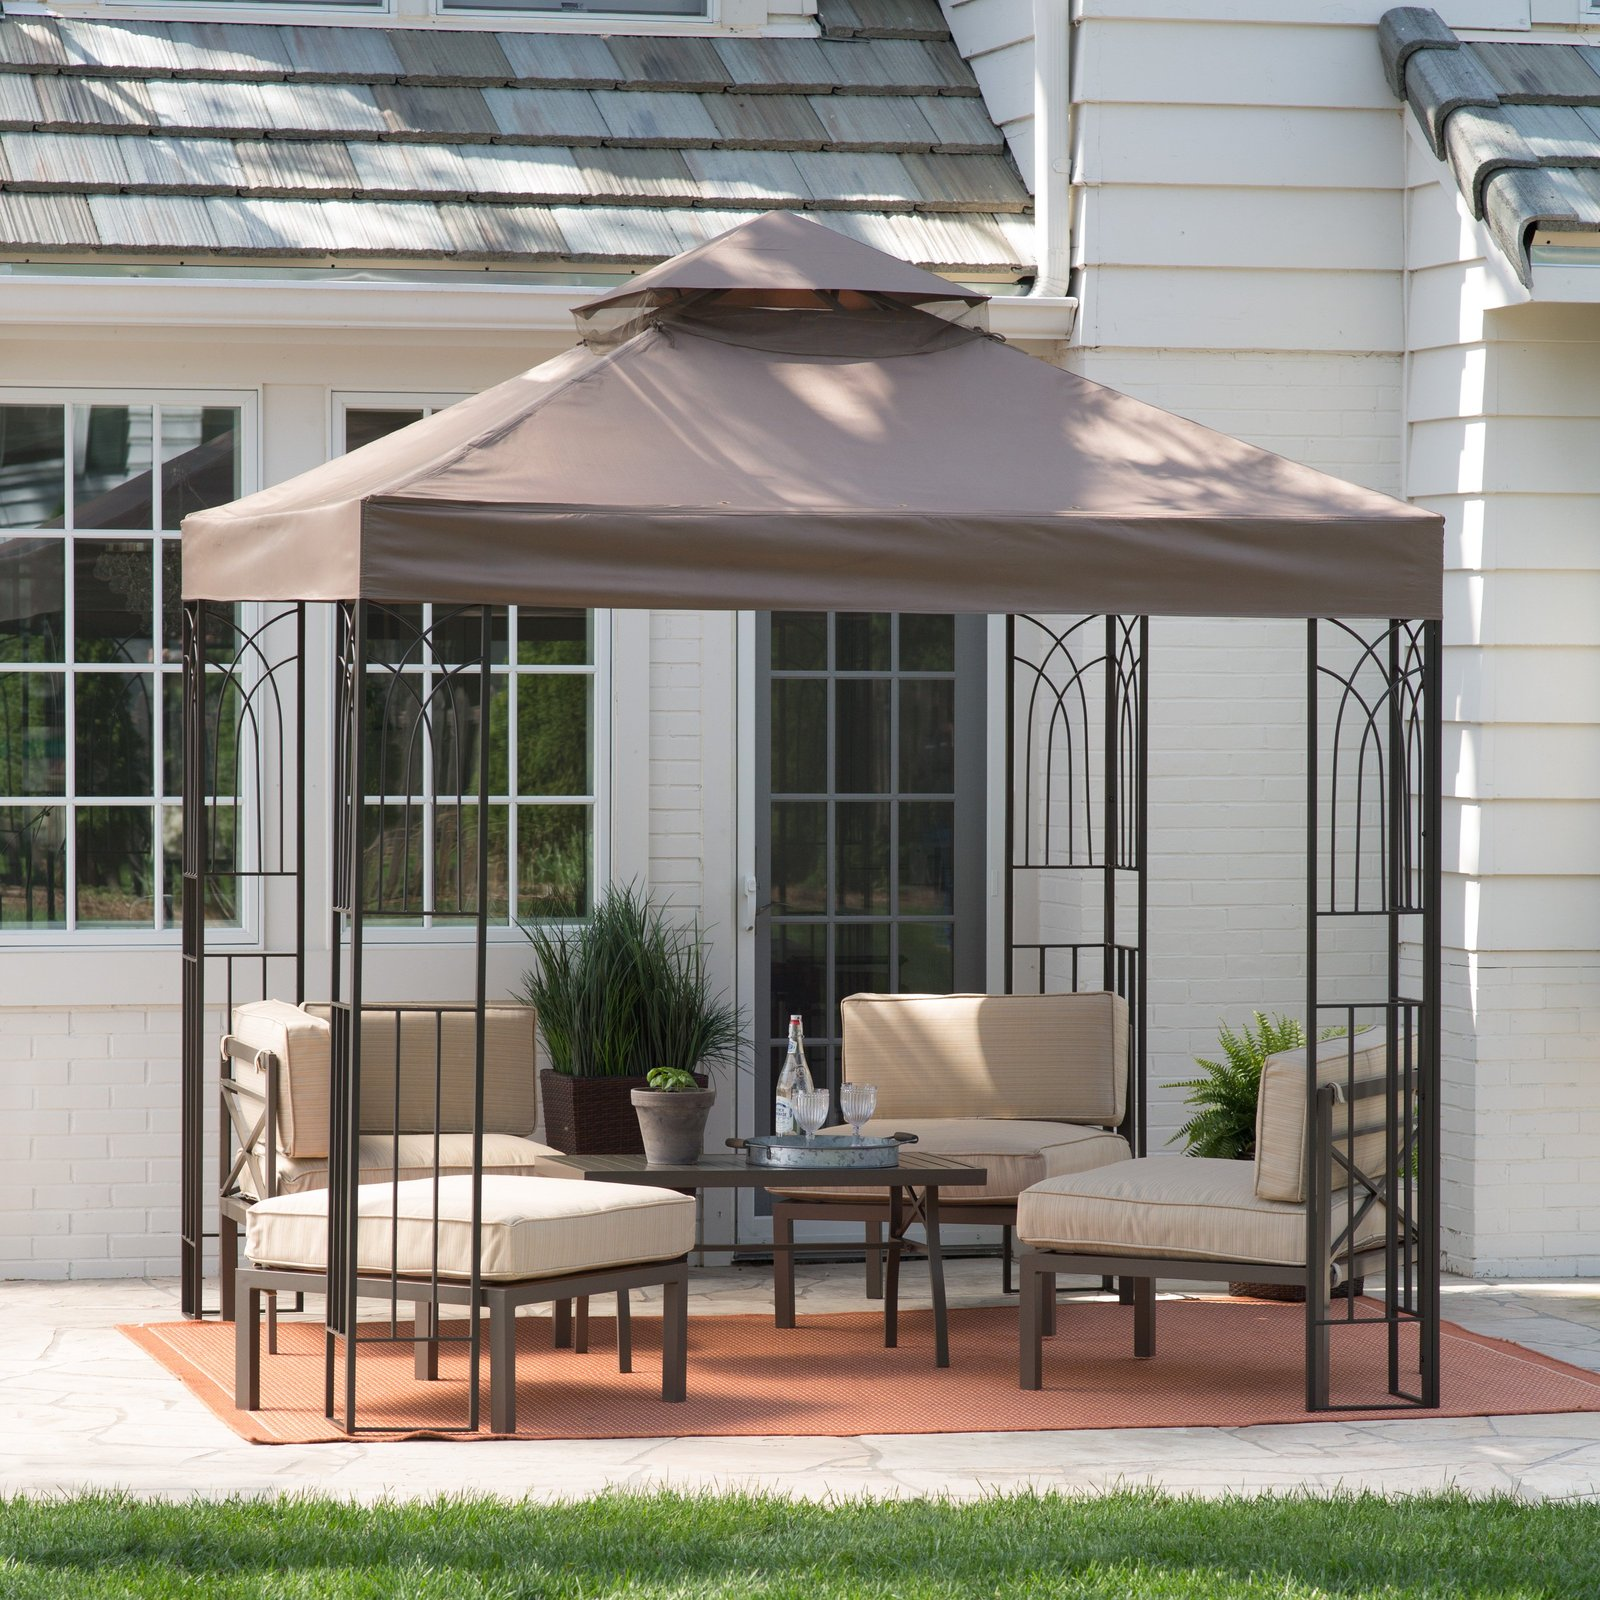 Gazebo Canopy Patio Sun Shade Outdoor Sun Shade Furniture